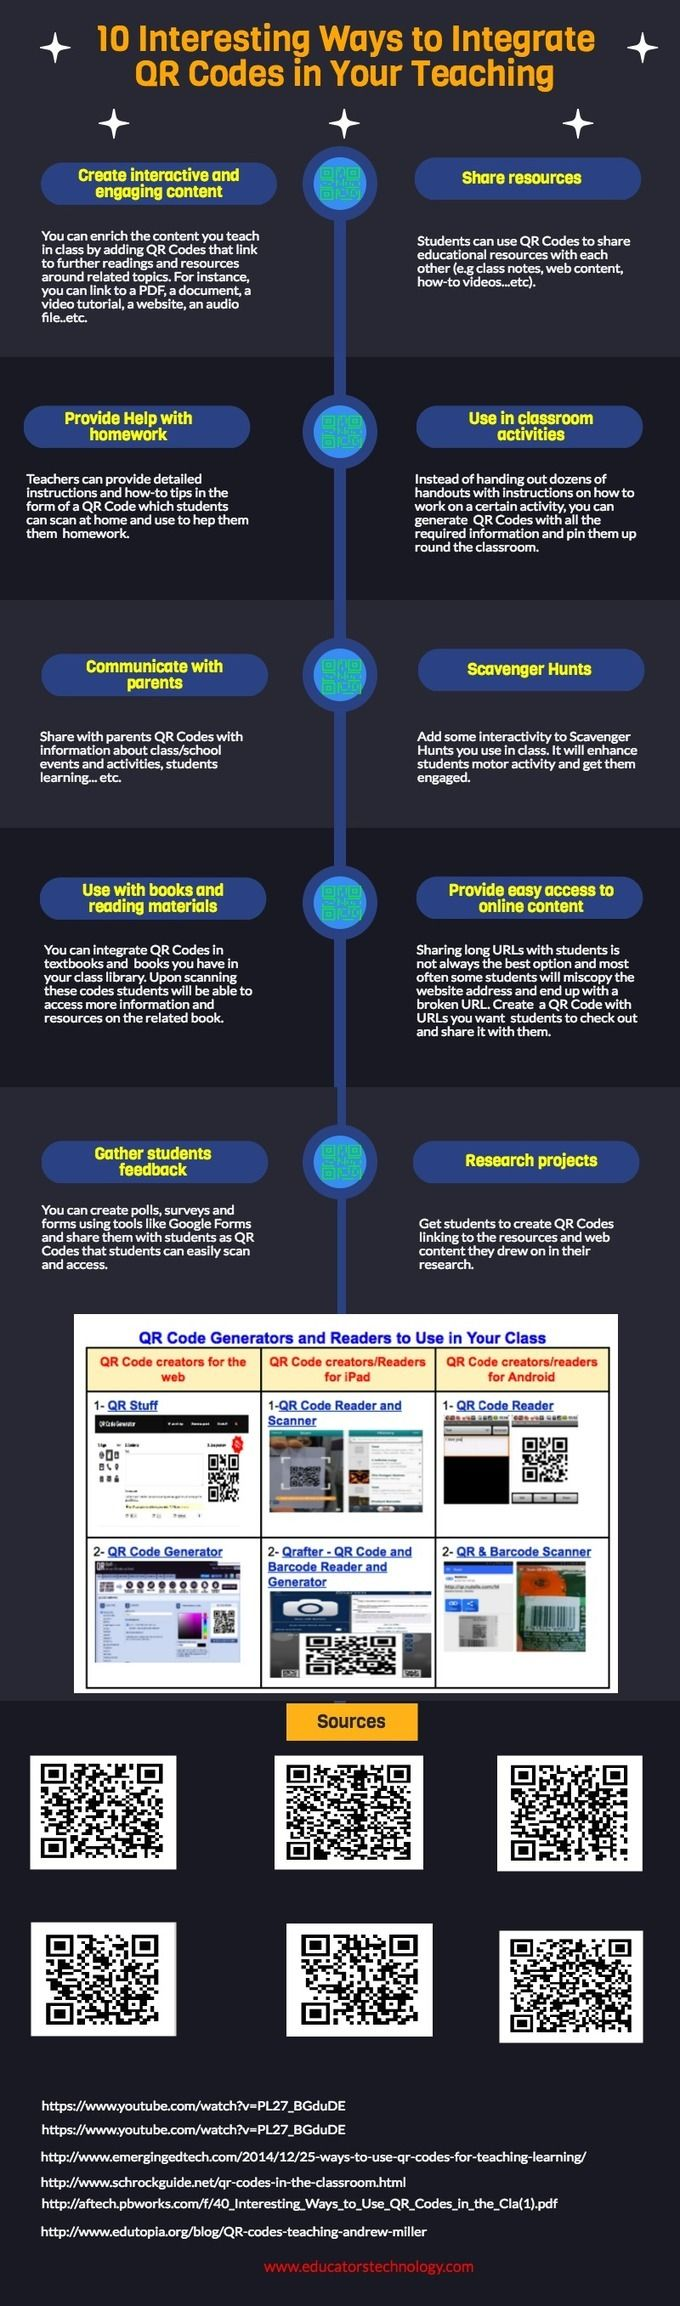 10 Interesting Ways to Integrate QR Codes in Your Teaching ~ Educational Technology and Mobile Learning